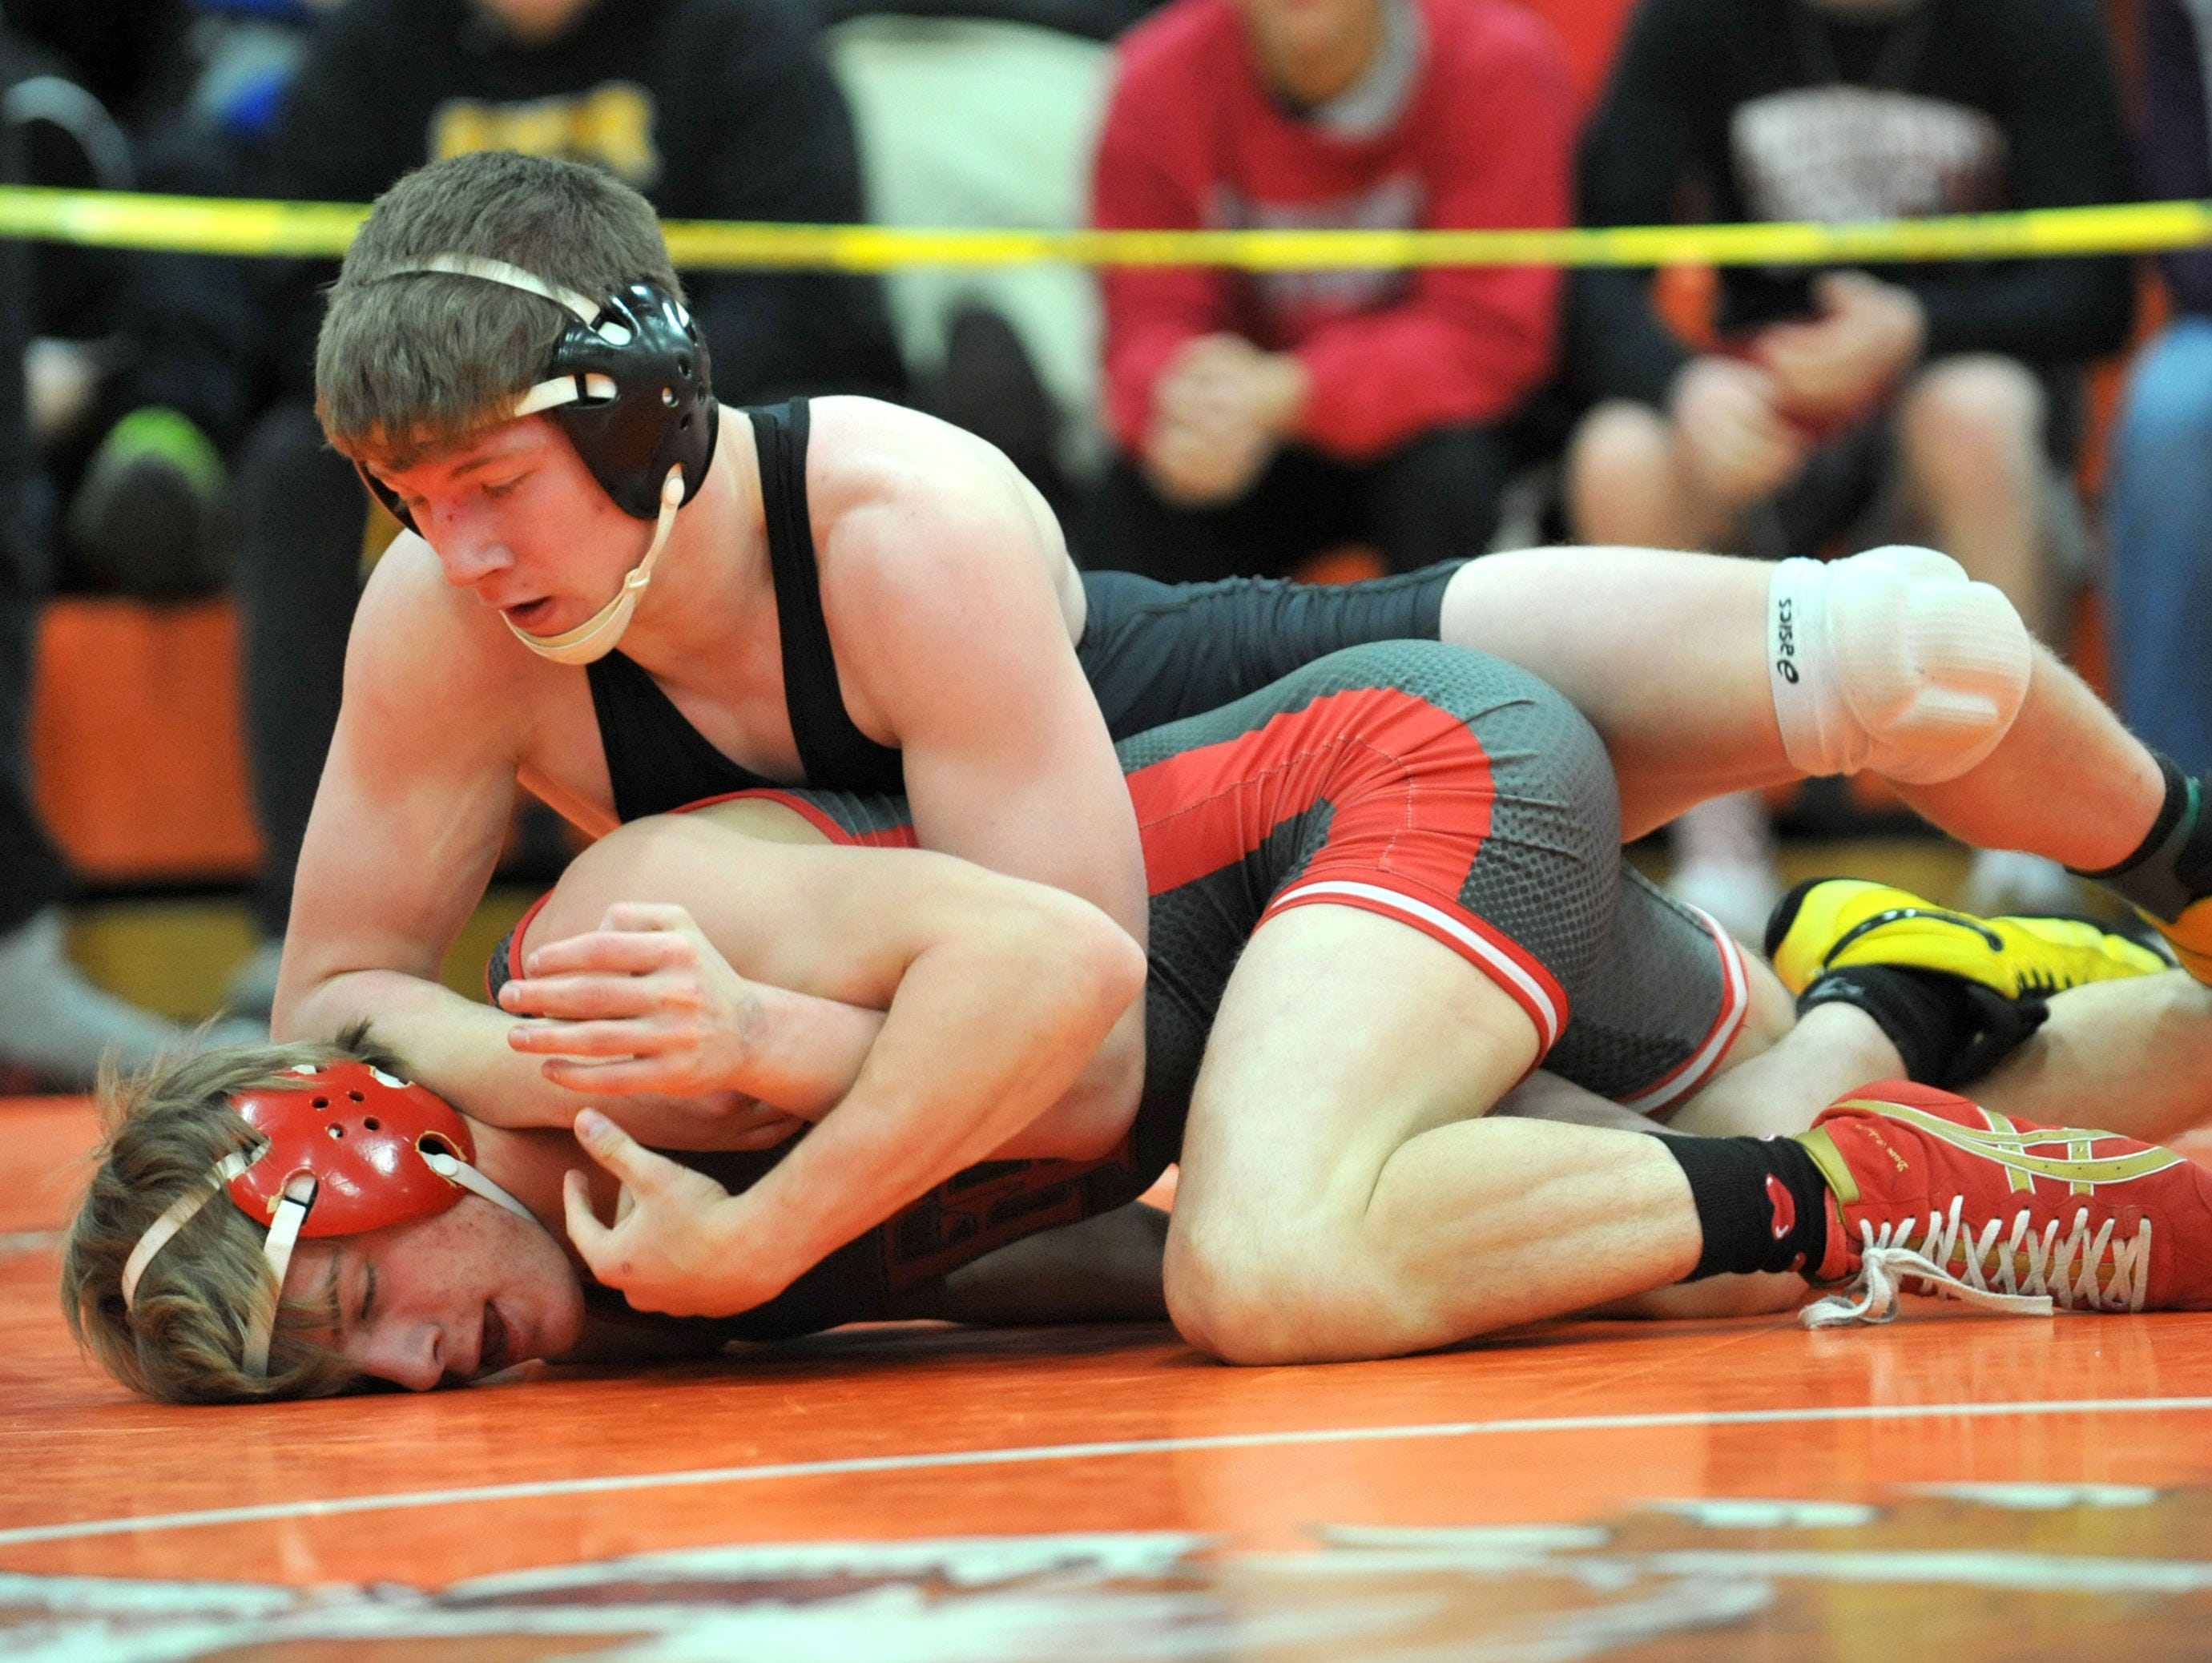 (top) Lexington's Brandon Leynaud wrestles Fredericktown's Carson Mills Saturday night during the 53rd J. C. Gorman Invitational. Leynaud placed first in the 132 lb weight class.